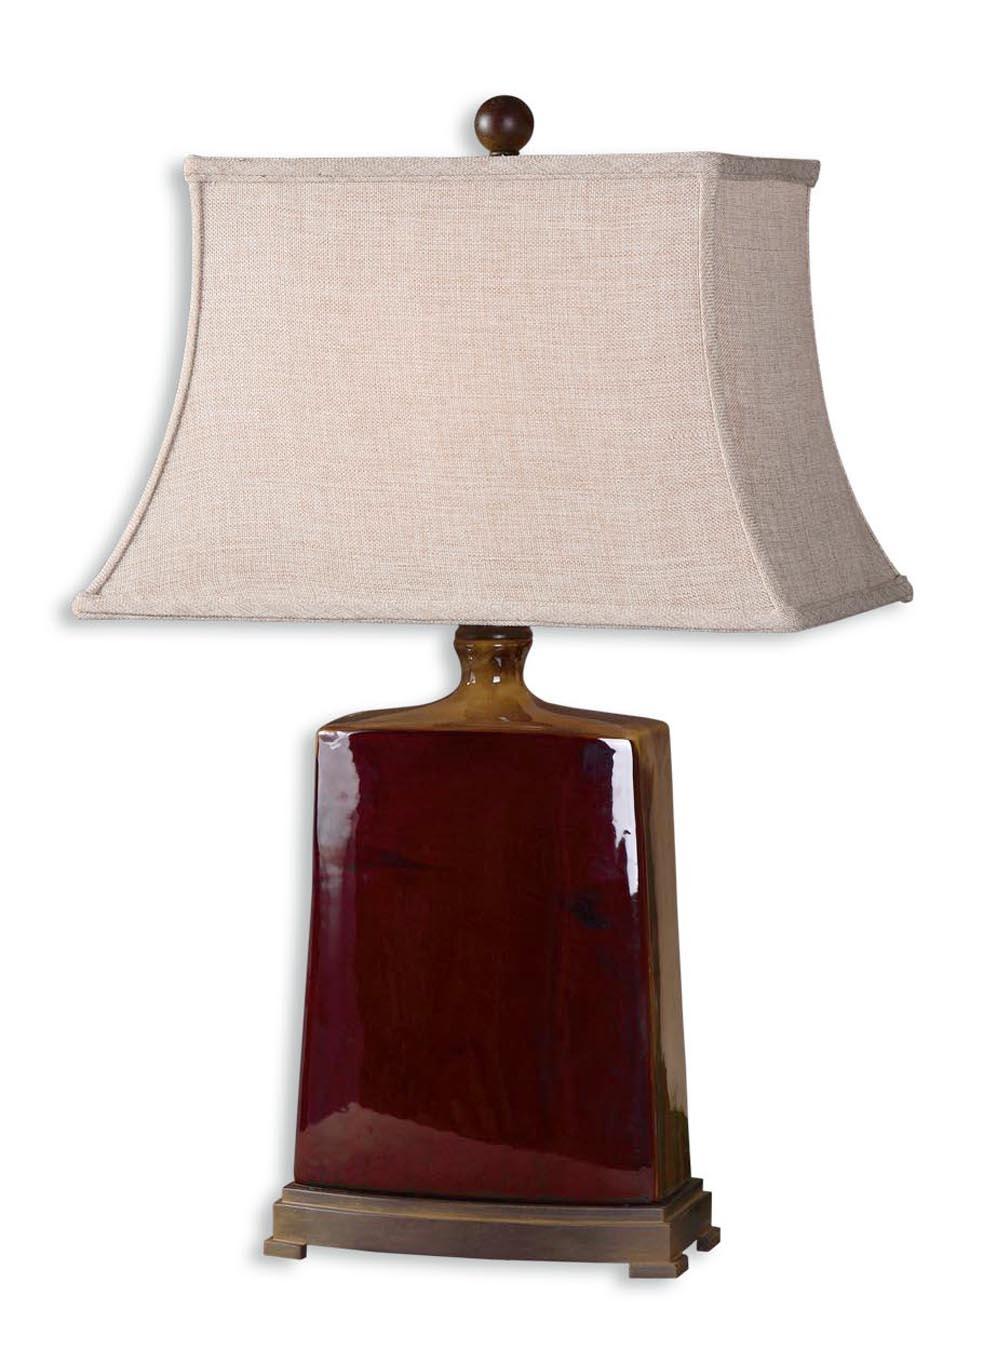 Foter On Shades Burgundy Lamp Ideas JF1lcK